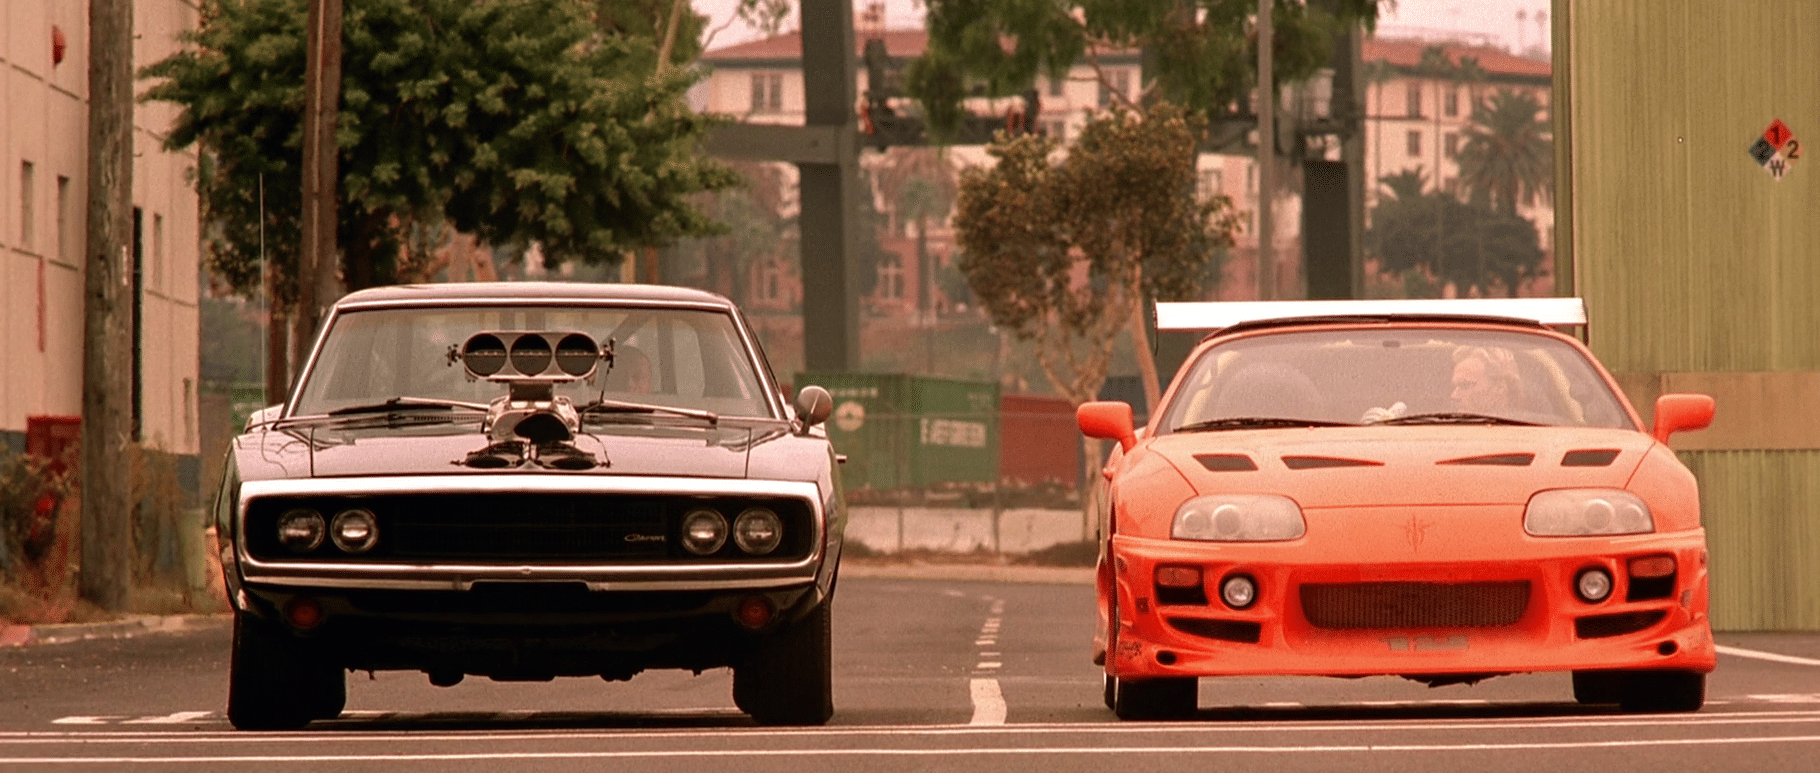 Fast & Furious 1 : Toyota Supra mk' et Dodge Charger R/T